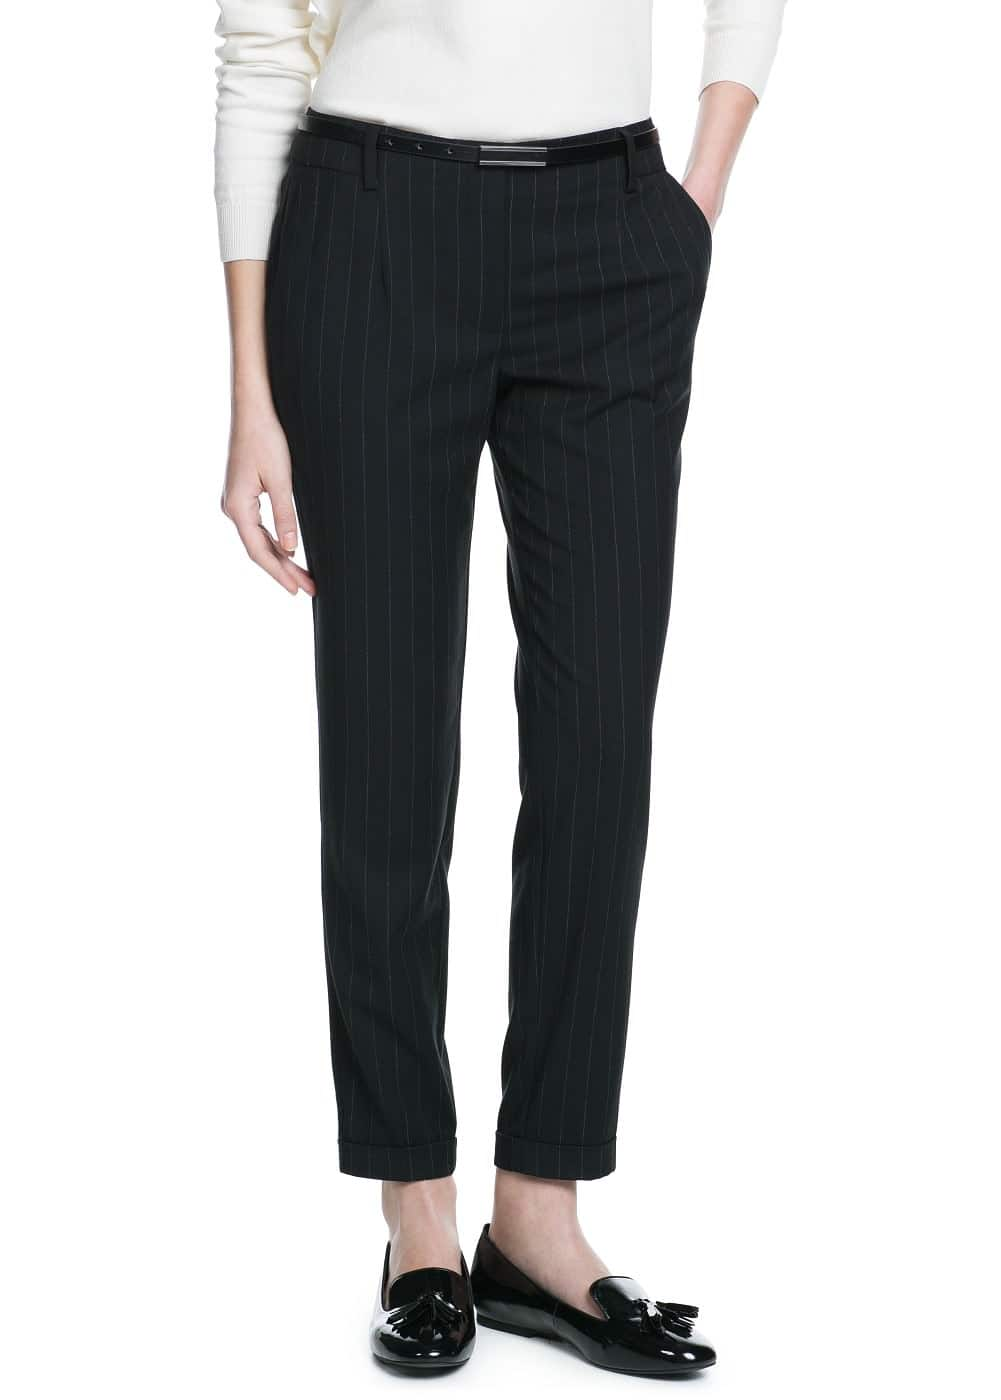 Chalk-stripe trousers